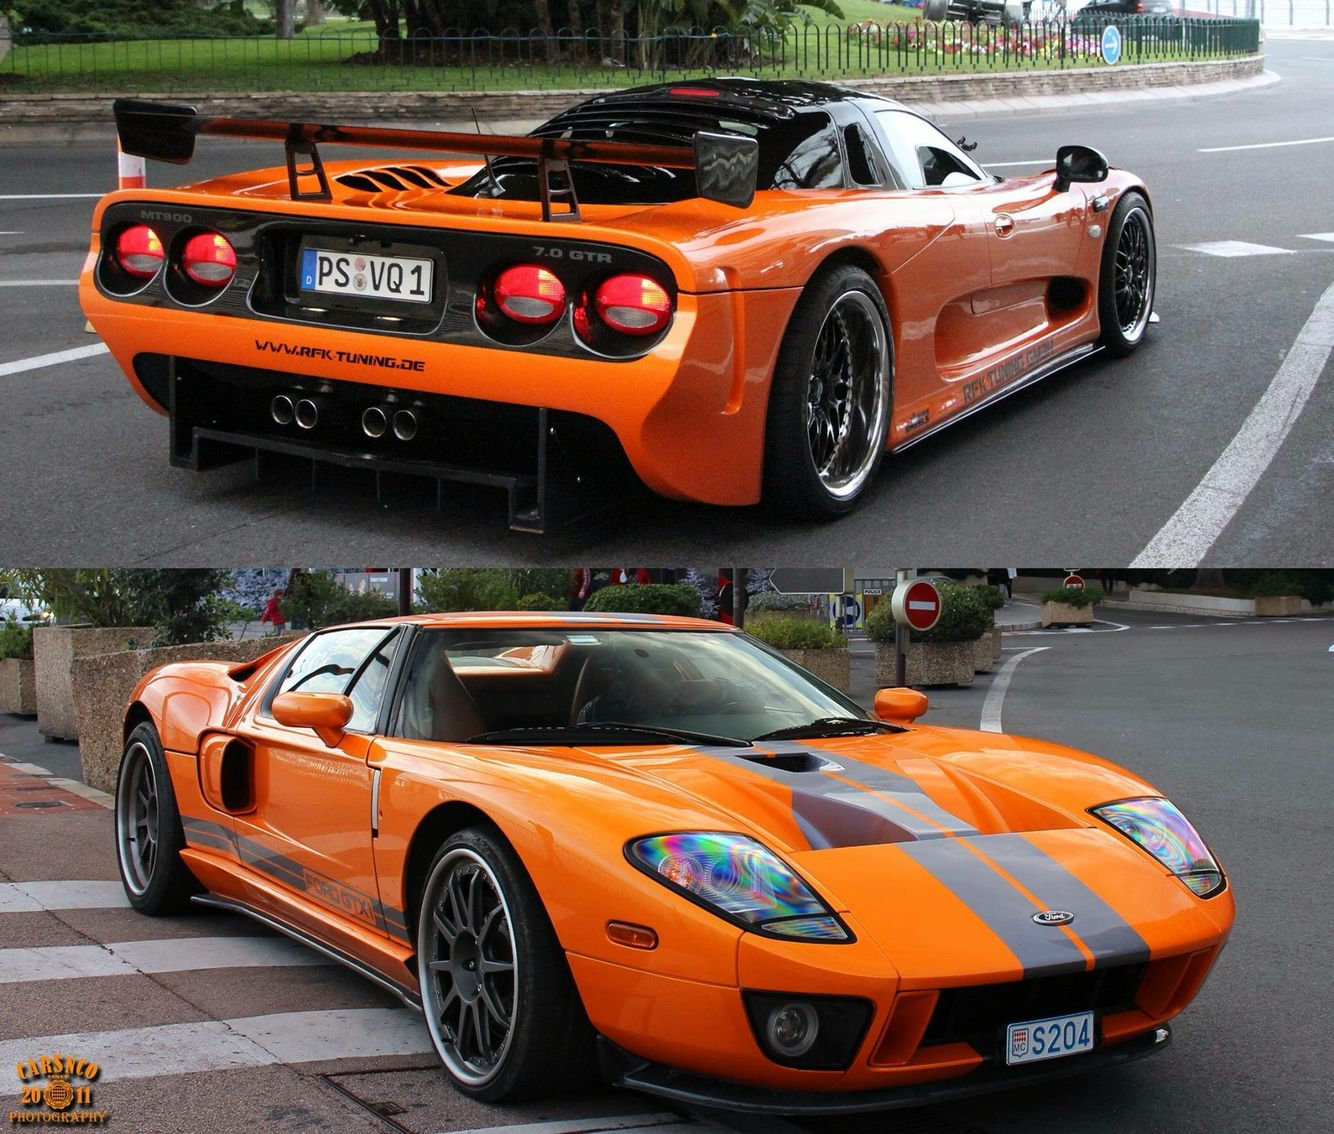 Ford Gtx1 Or Mosler Mt900 Gtr Which Do You Choose Auto